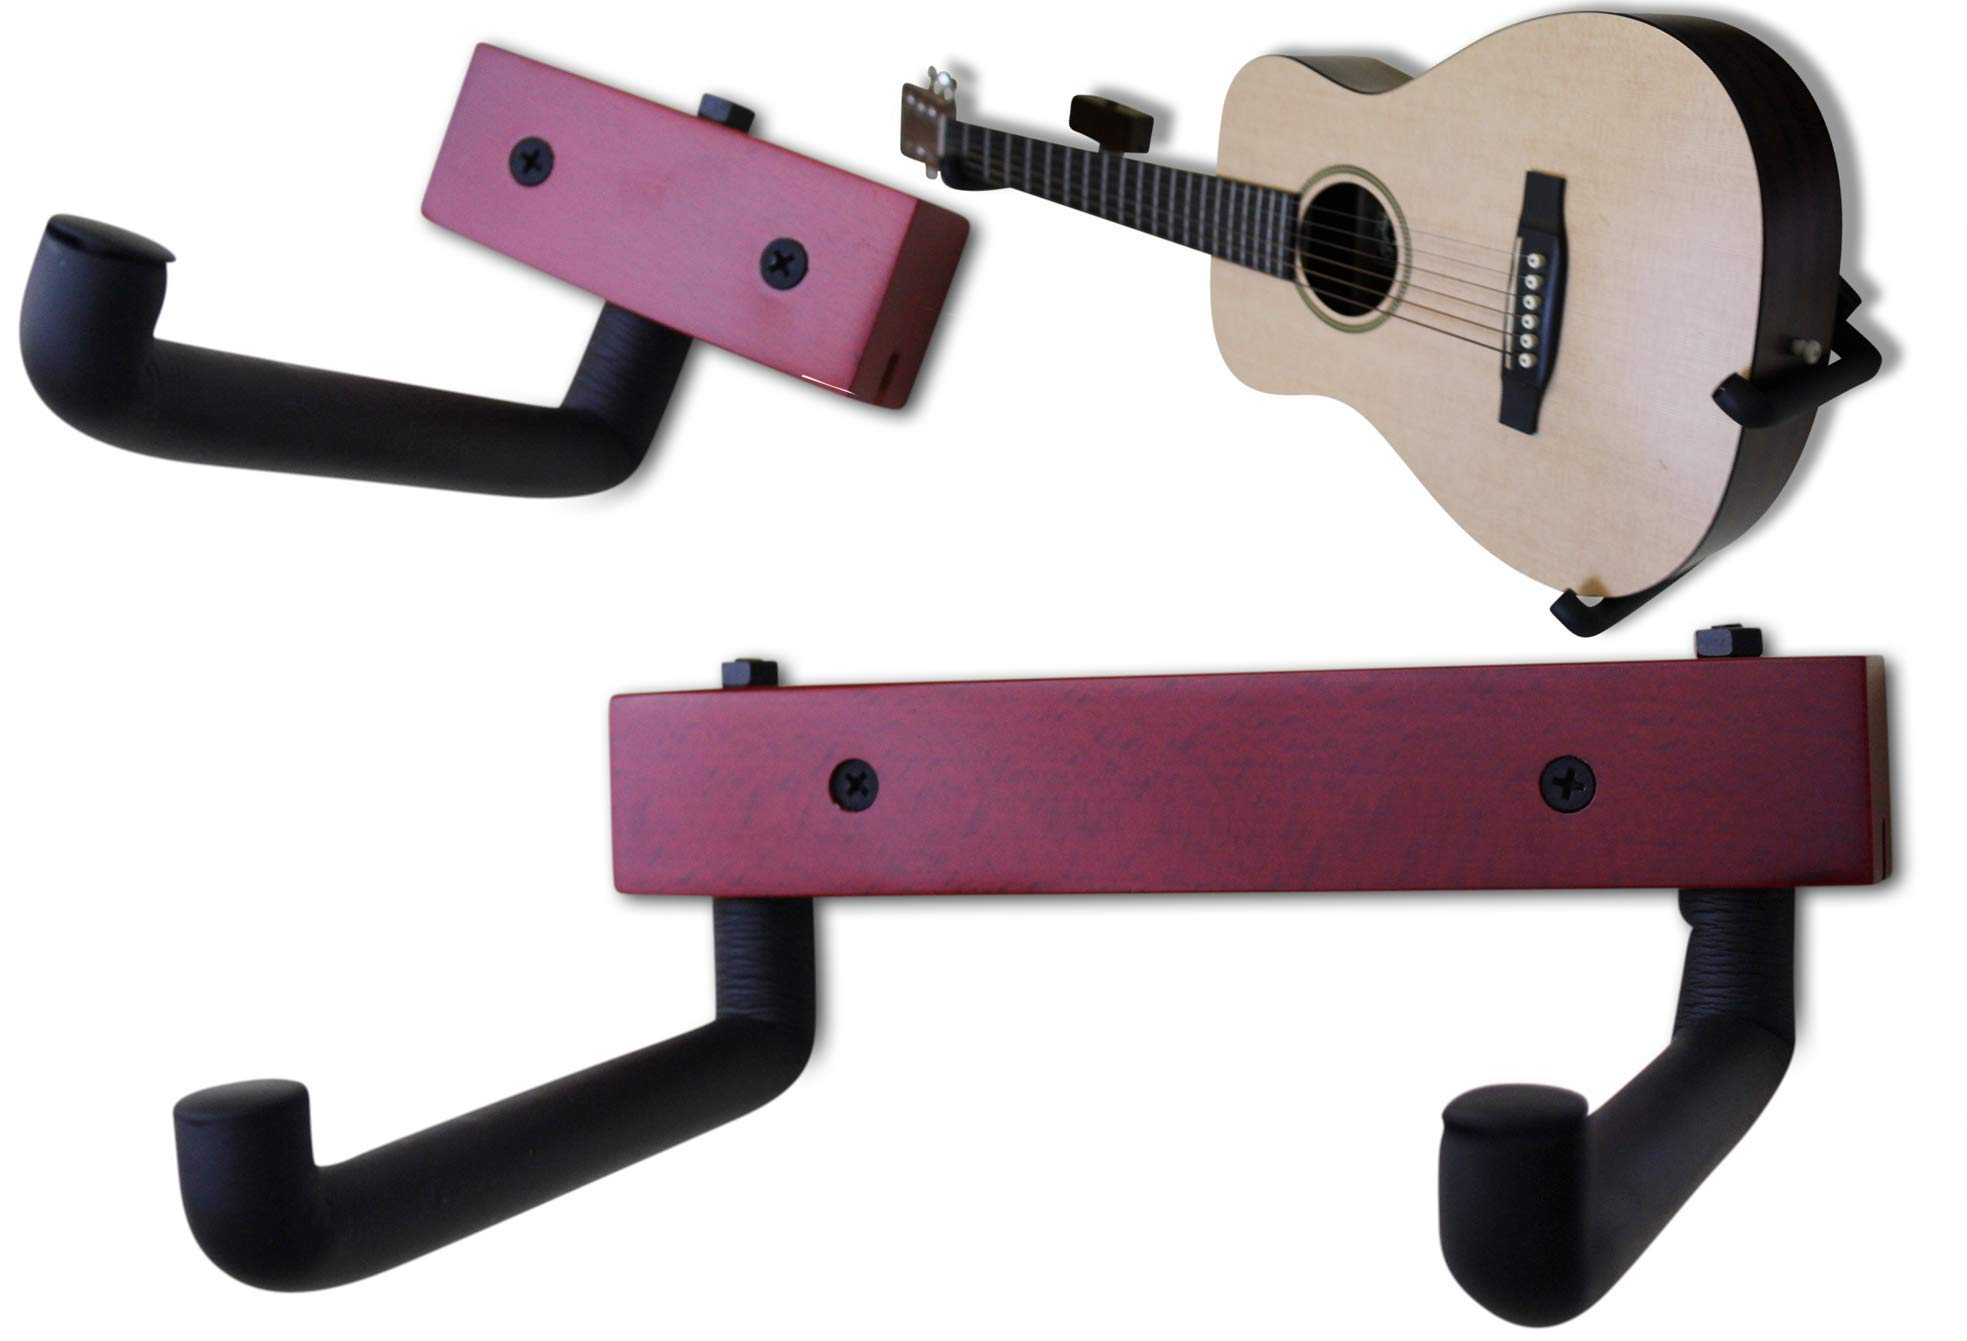 RawRock Horizontal Guitar Hanger Tilt and Display Your Guitar, Ukulele, Bass, Electric Guitar, Banjo at a Slanted Angle Sideways - Hang for easy access (Red Stain)